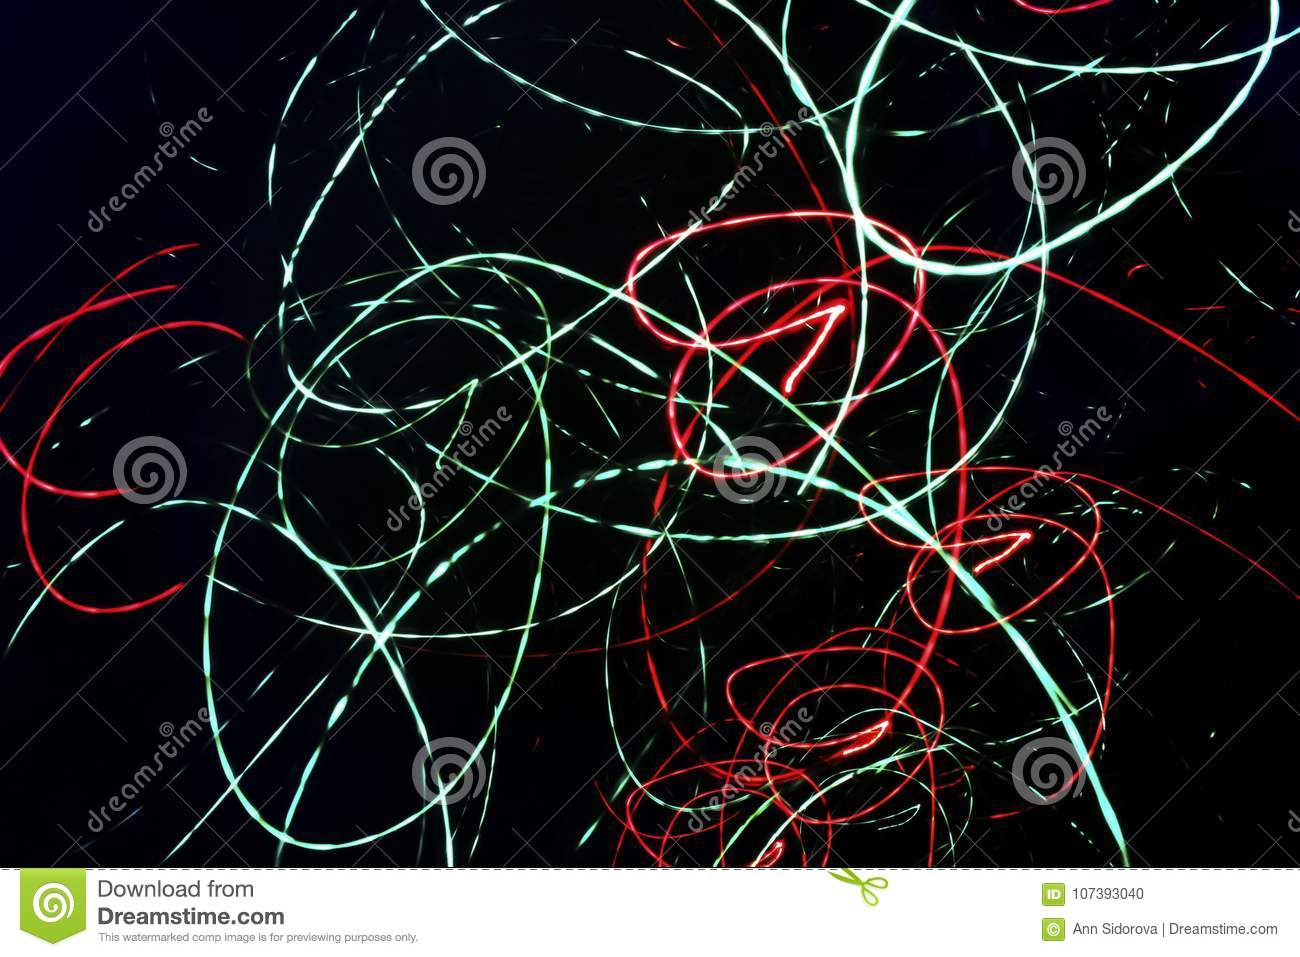 Abstract black background with neon chaotic spiral lines